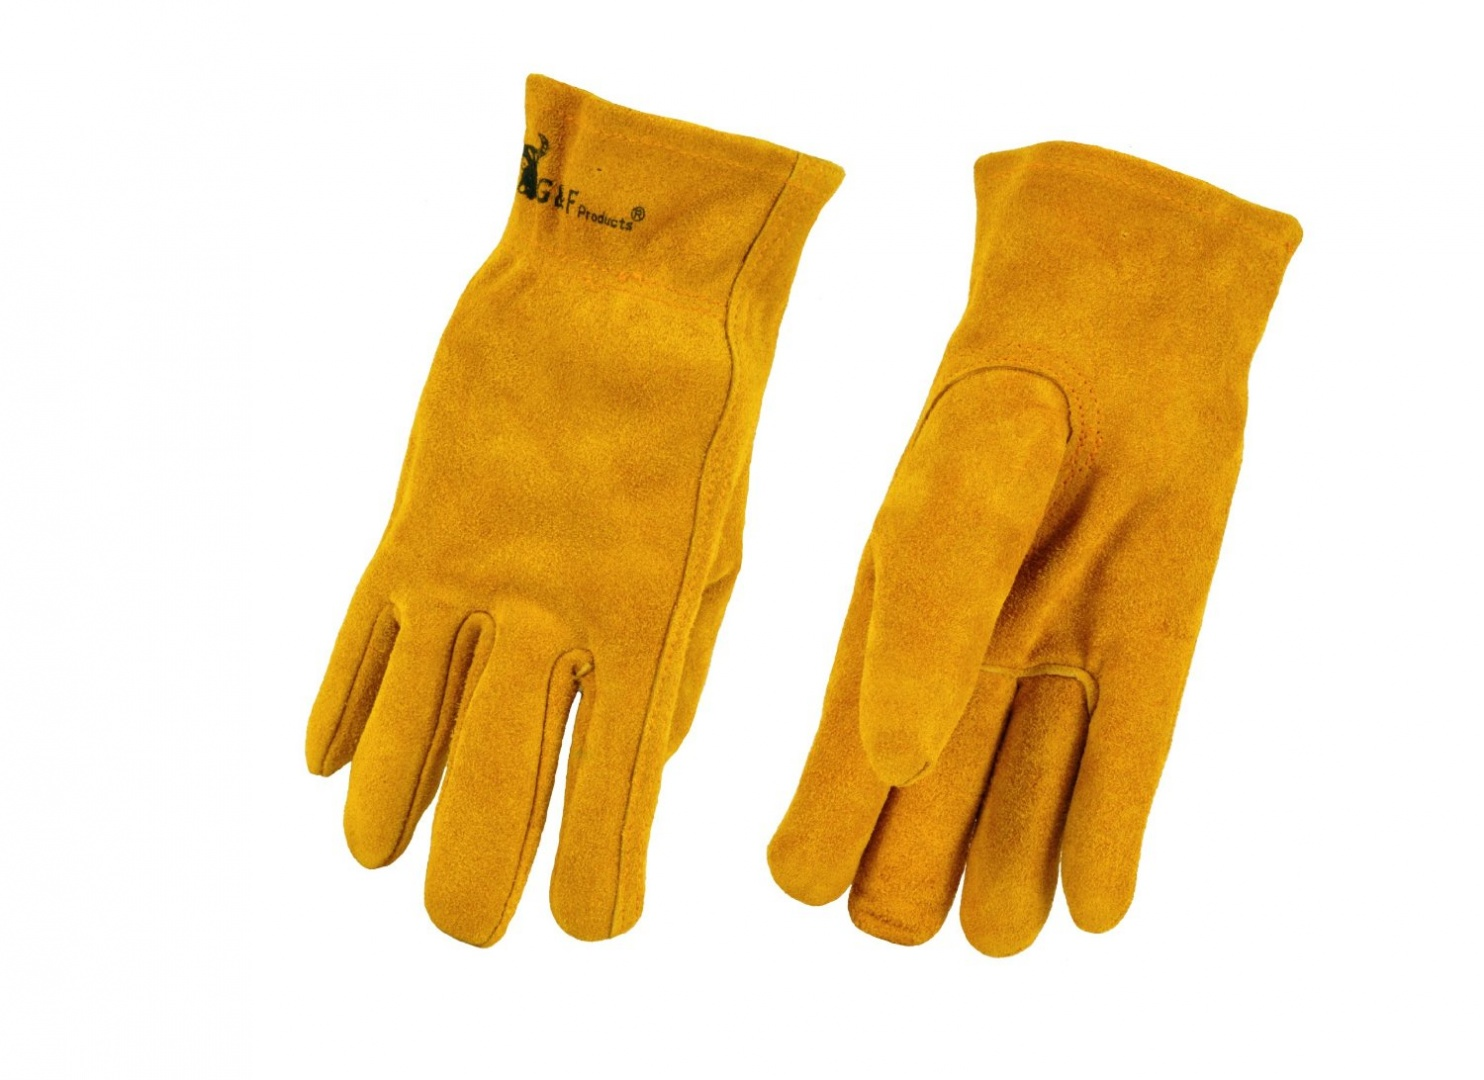 Kinco 94C (2-Pack) - Leather Work Gloves for Kids - Very Soft and Durable Pigskin Leather - Lightweight Hand Protection for those Little Hands - No Break in Needed.